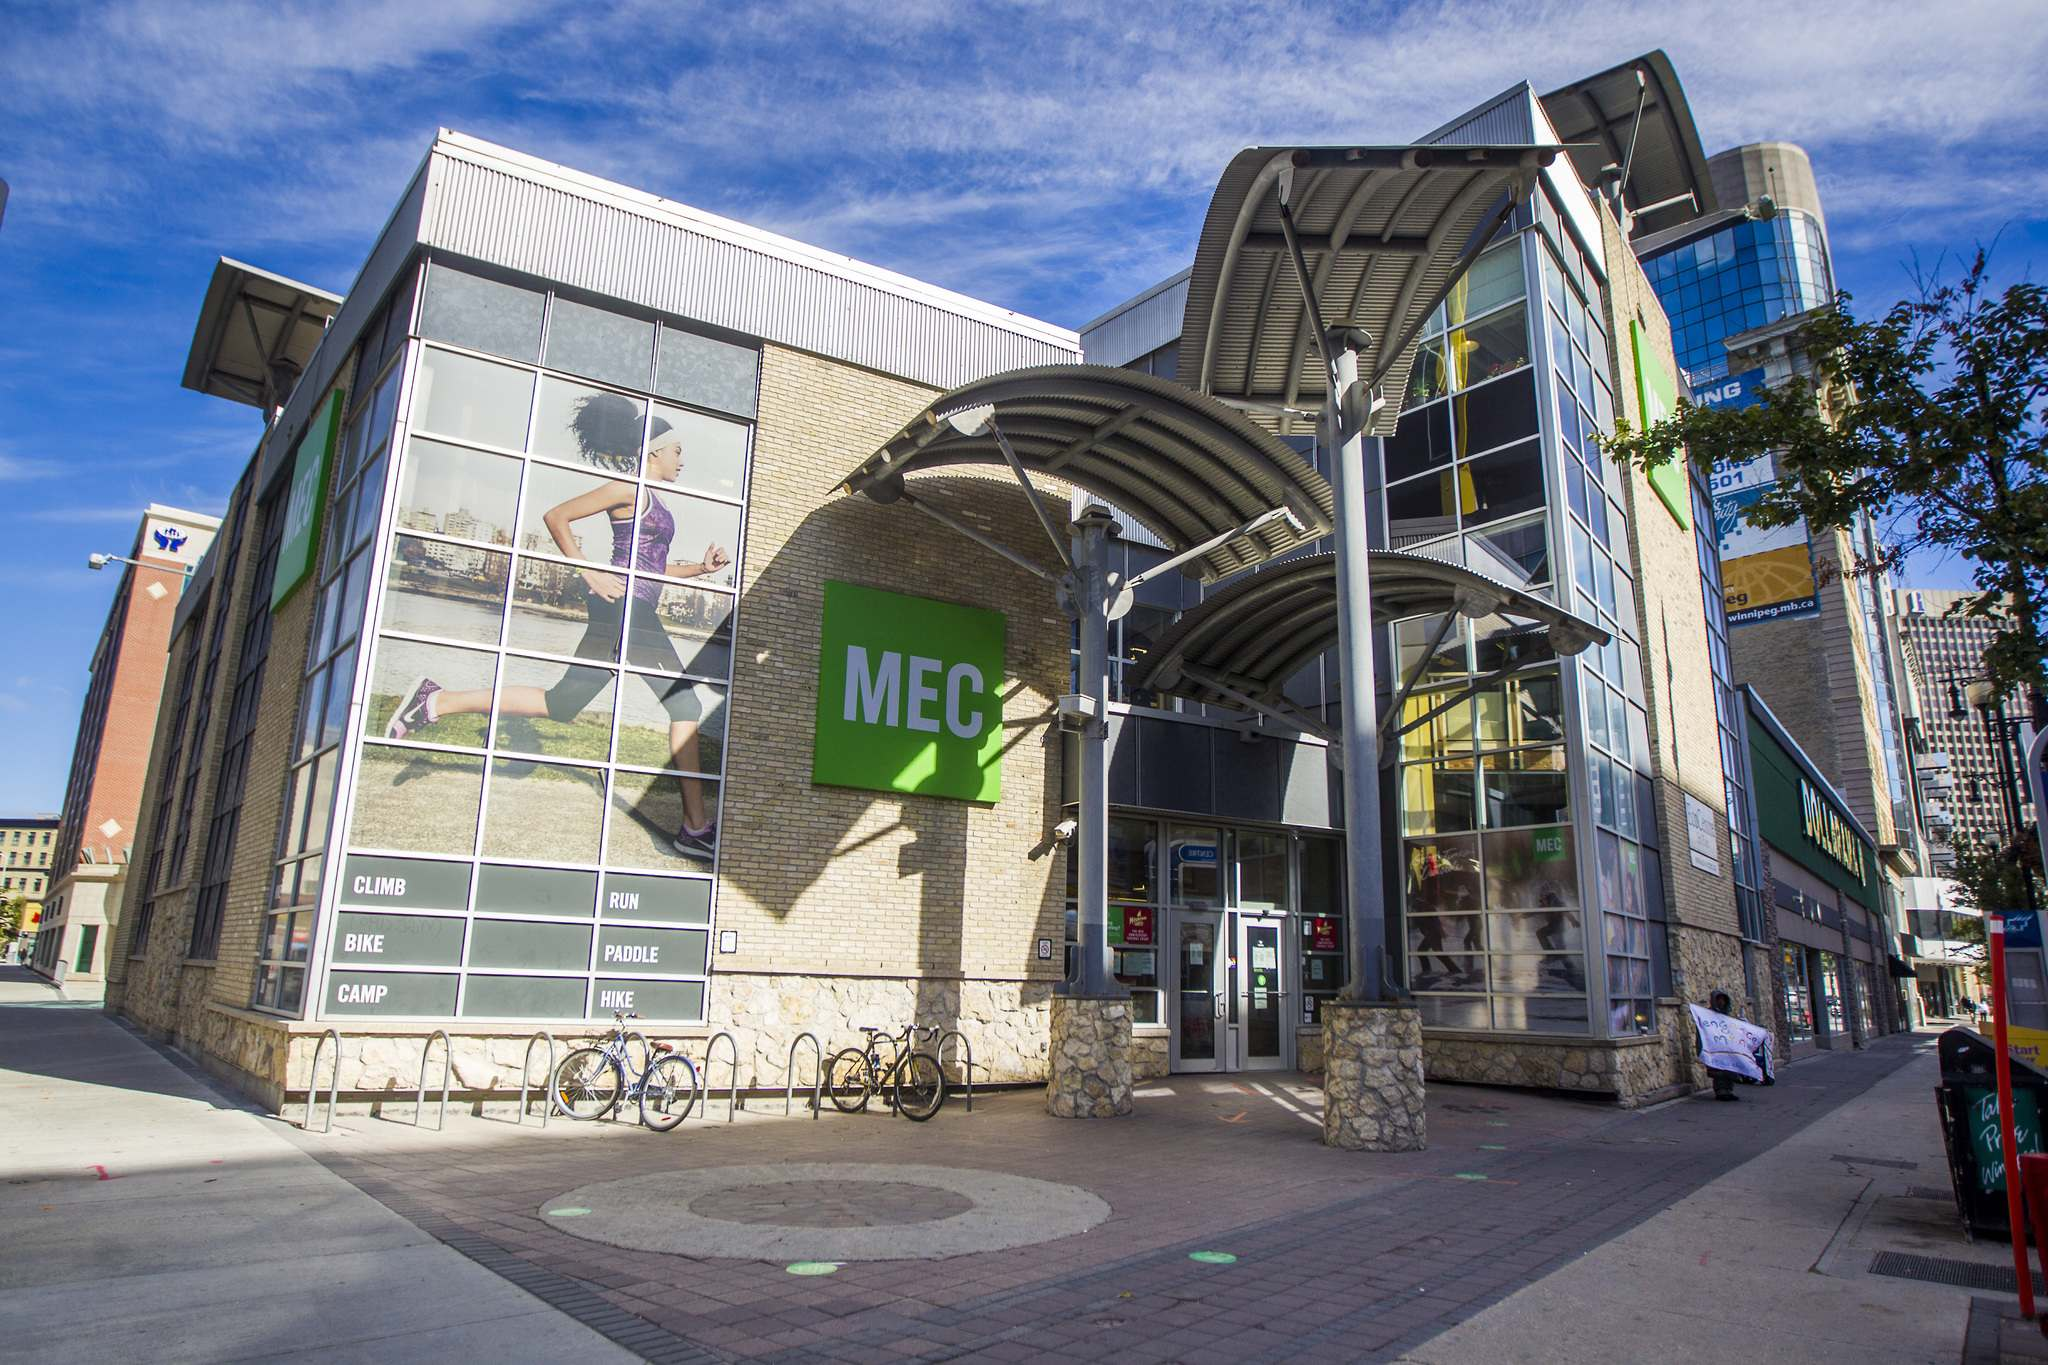 Los Angeles-based private investment firm Kingswood Capital Management will acquire MEC's assets, including the majority of its retail stores. (Mikaela MacKenzie / Winnipeg Free Press)